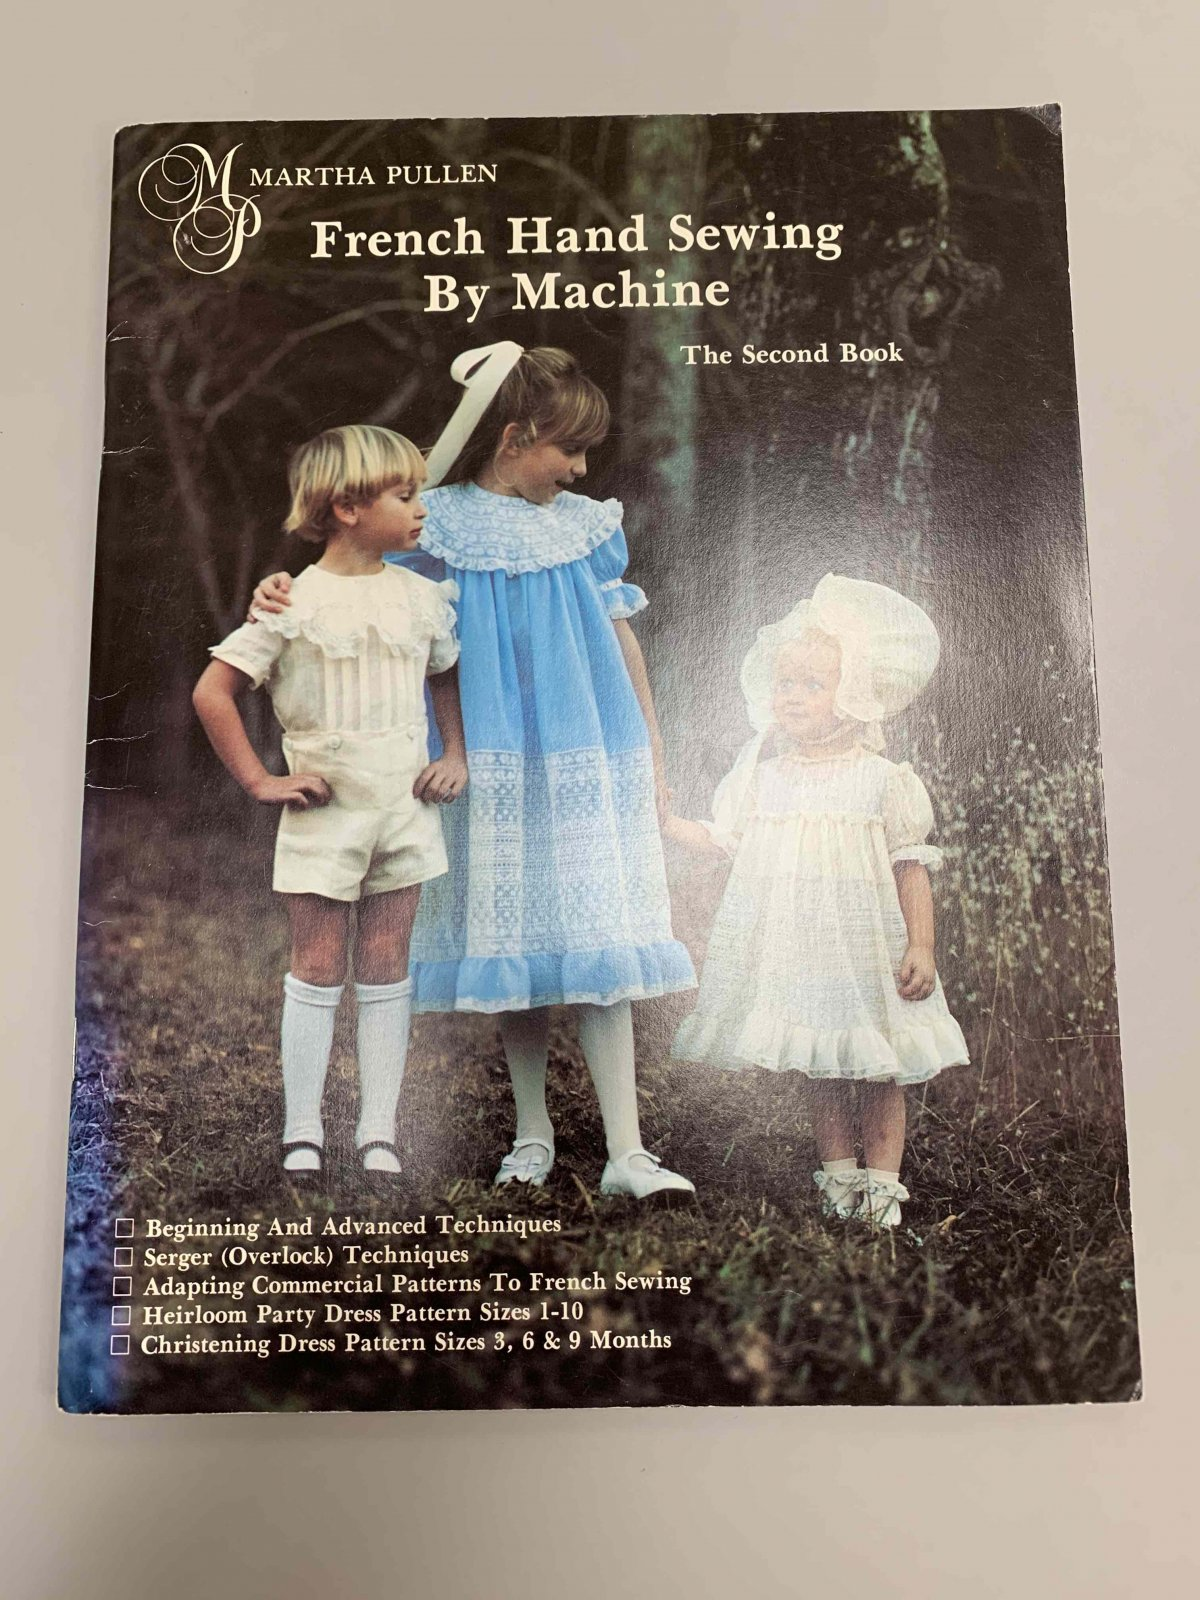 French Handsewing by Machine - Martha Pullen (Previously Loved)